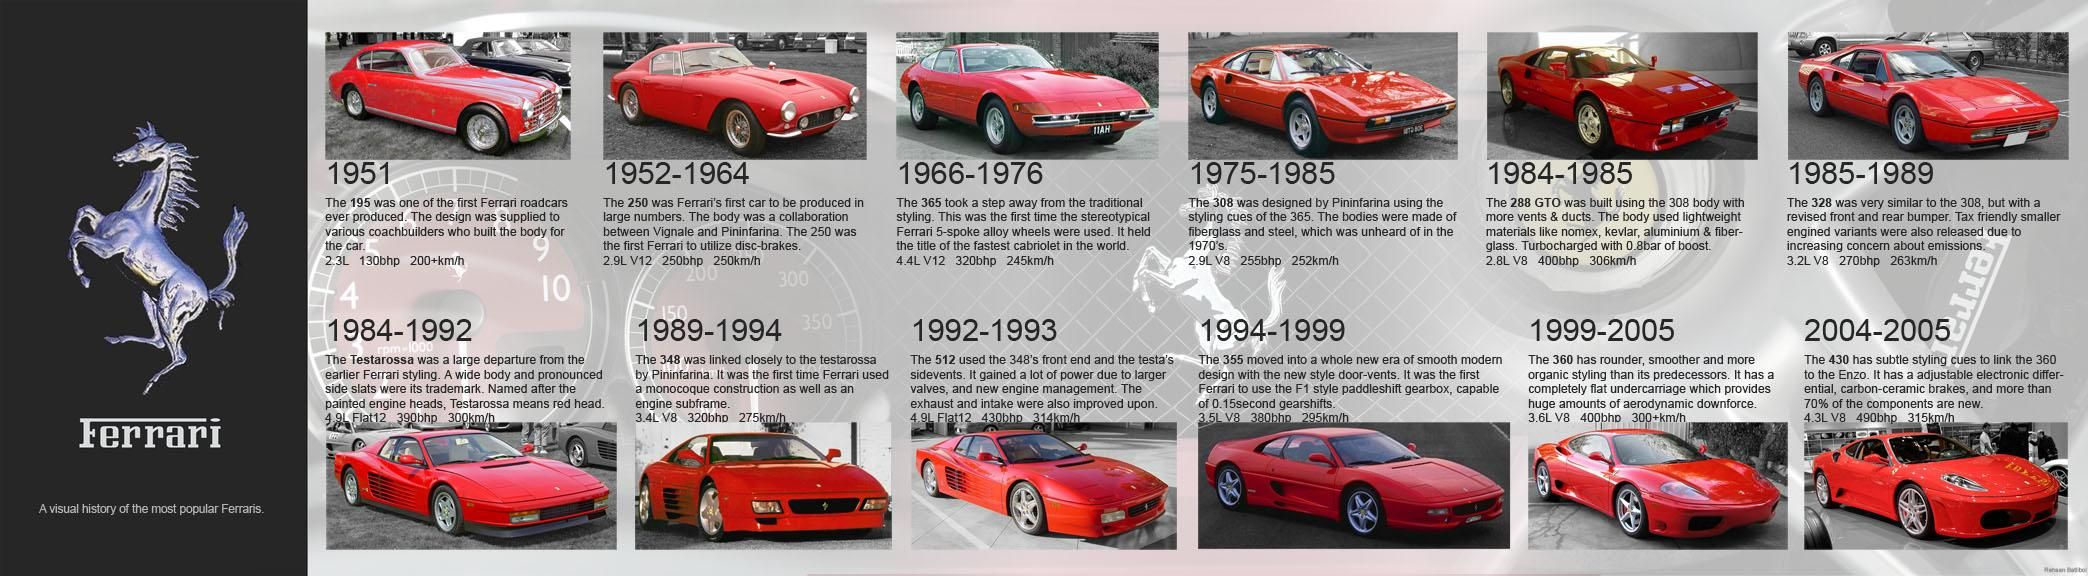 History Of Ferrari - Lessons - Tes Teach